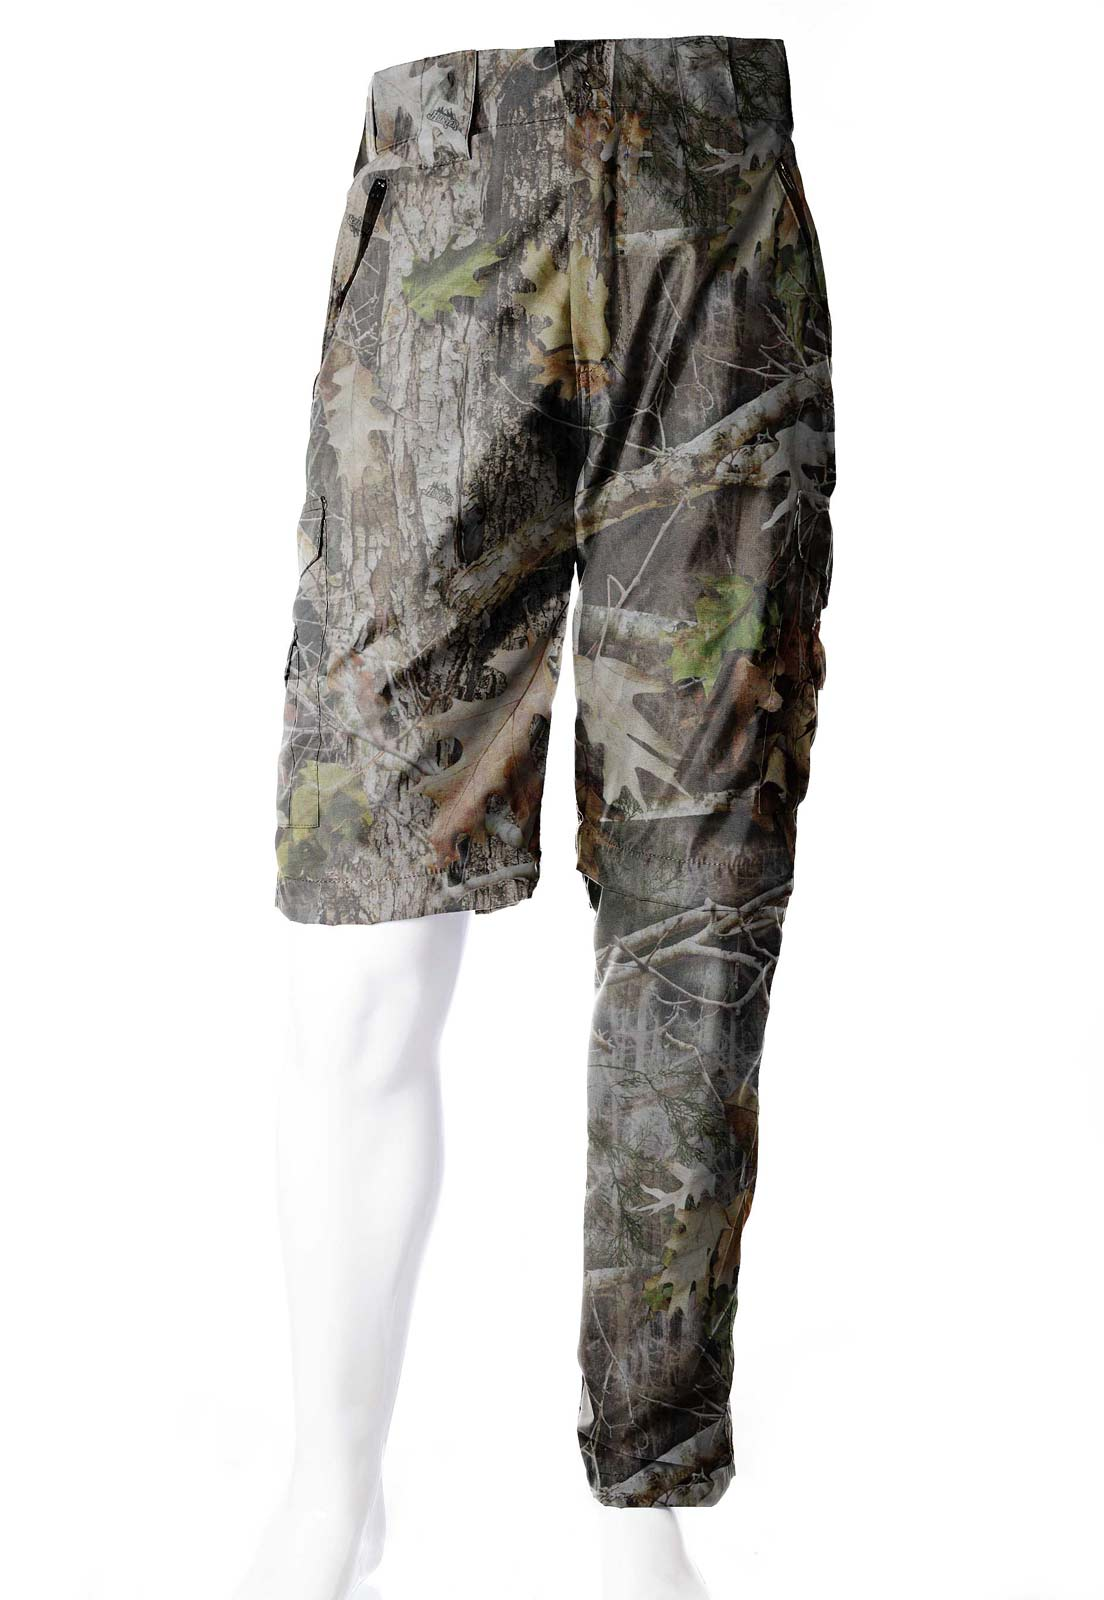 Calça-Bermuda Camuflada Realtree UltraLight Masculina  - REAL HUNTER OUTDOORS